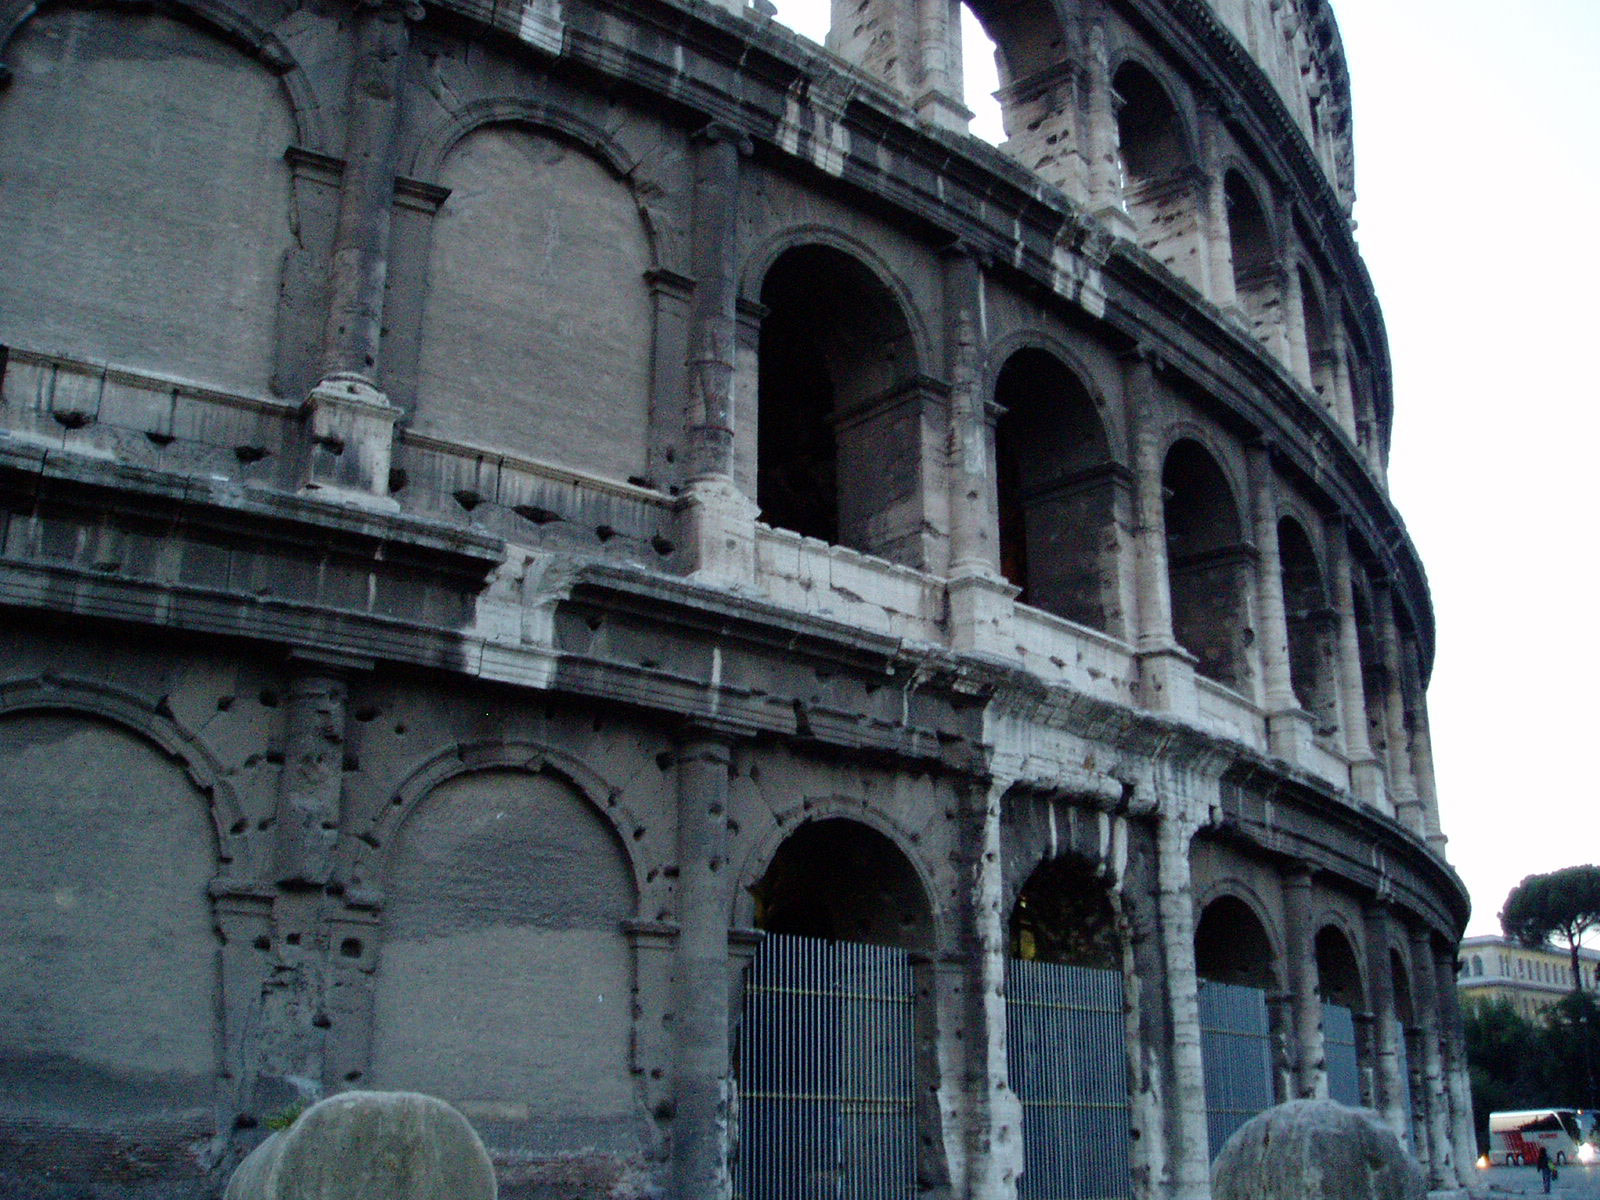 Rome - October 2006